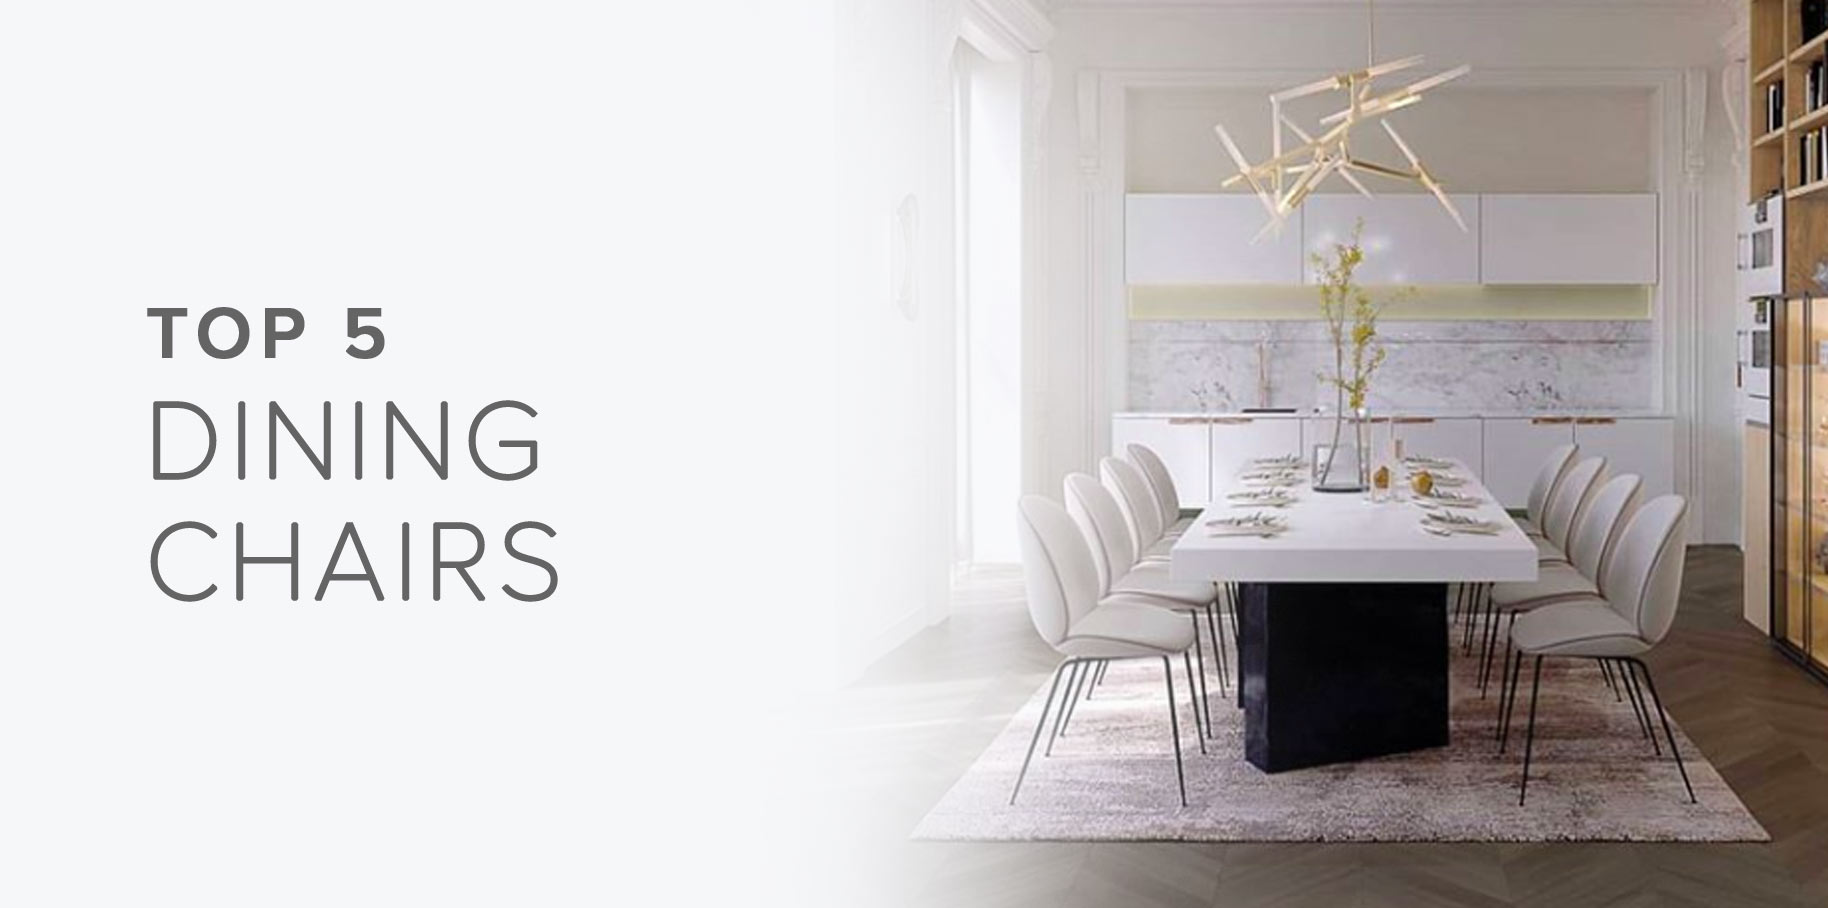 Top 5 Dining Chairs